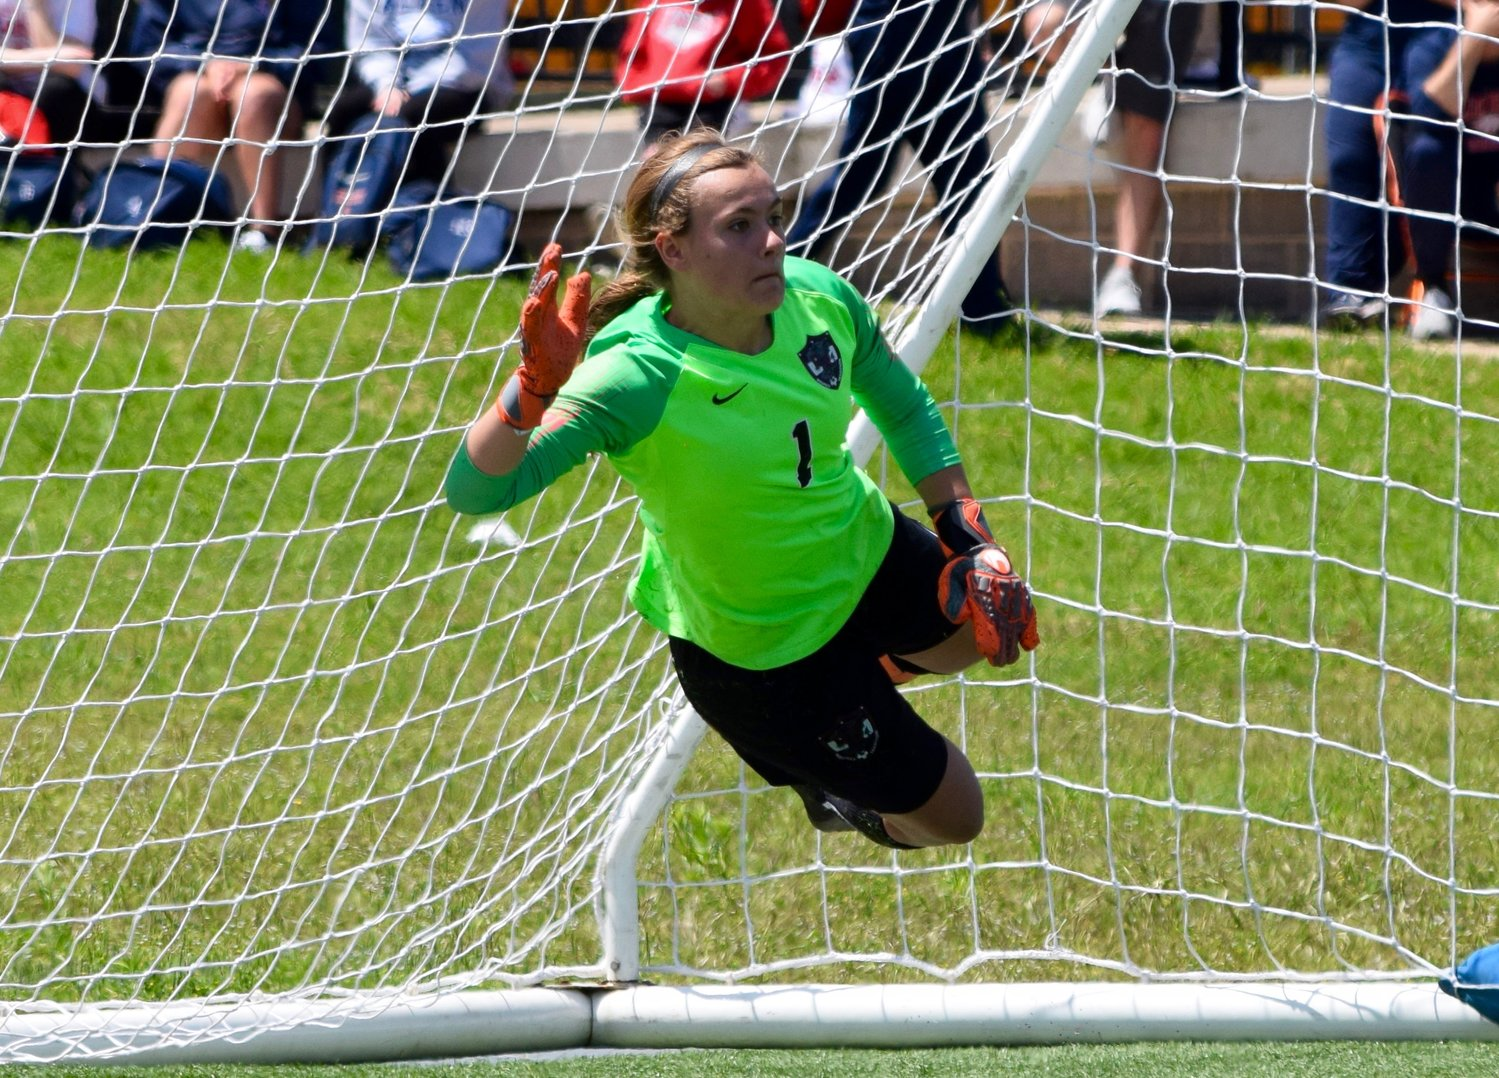 Round Rock's Lauren Traywick was named the District 13-6A Goalkeeper MVP. The Lady Dragons lost to Rockwall Heath in the regional tournament.